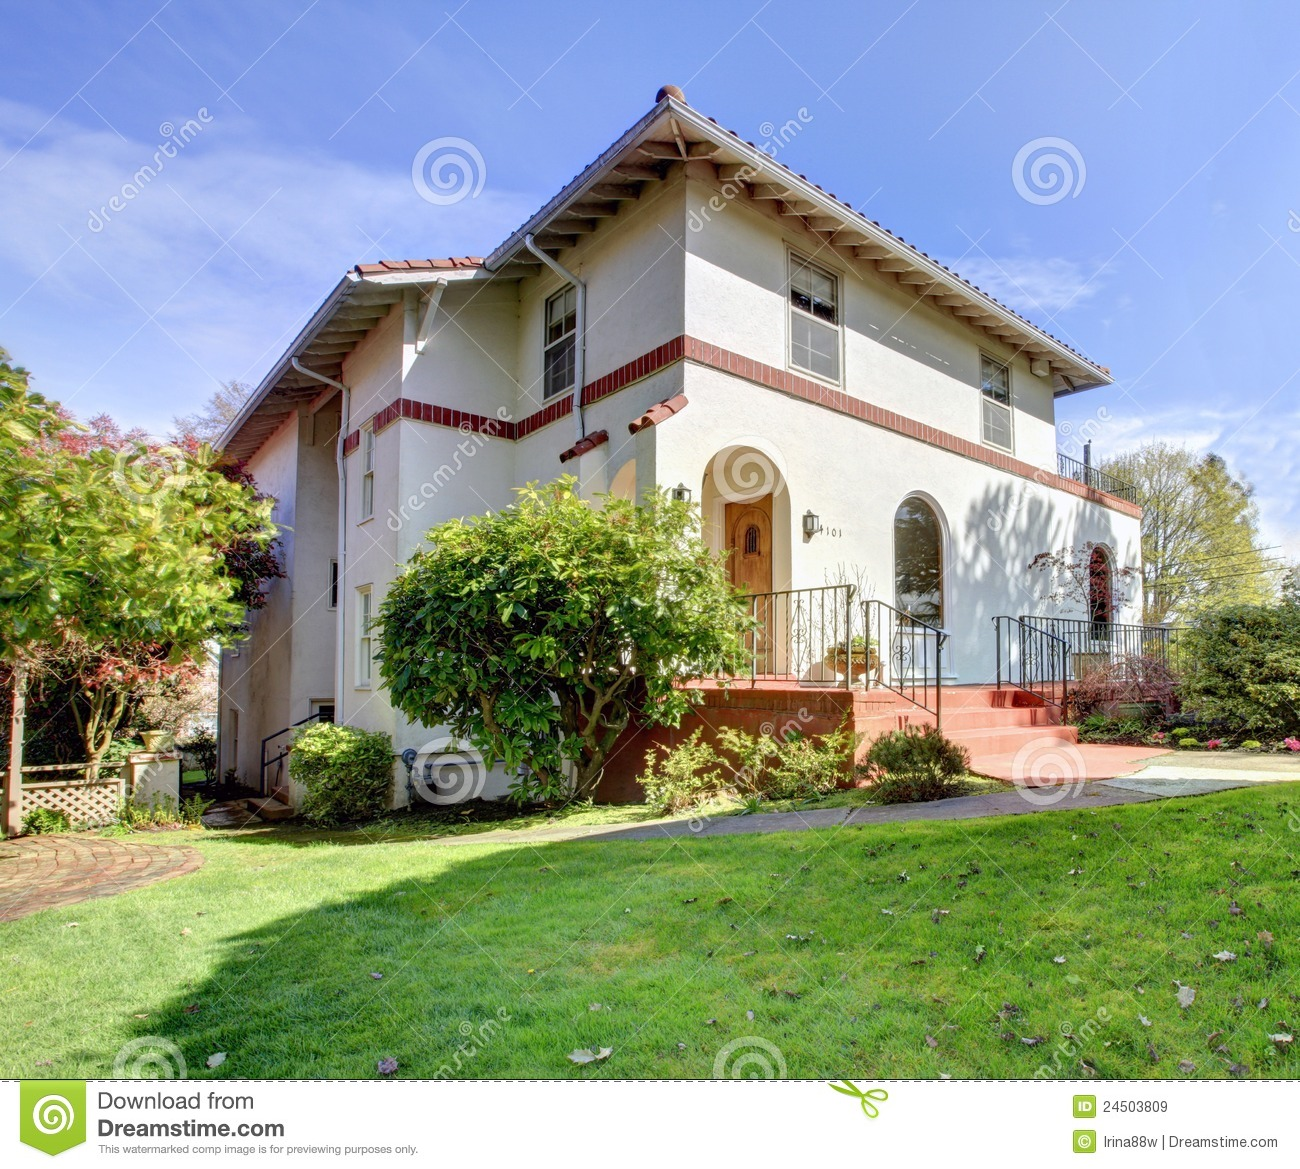 Spanish style white house front exterior royalty free for Spanish style exterior